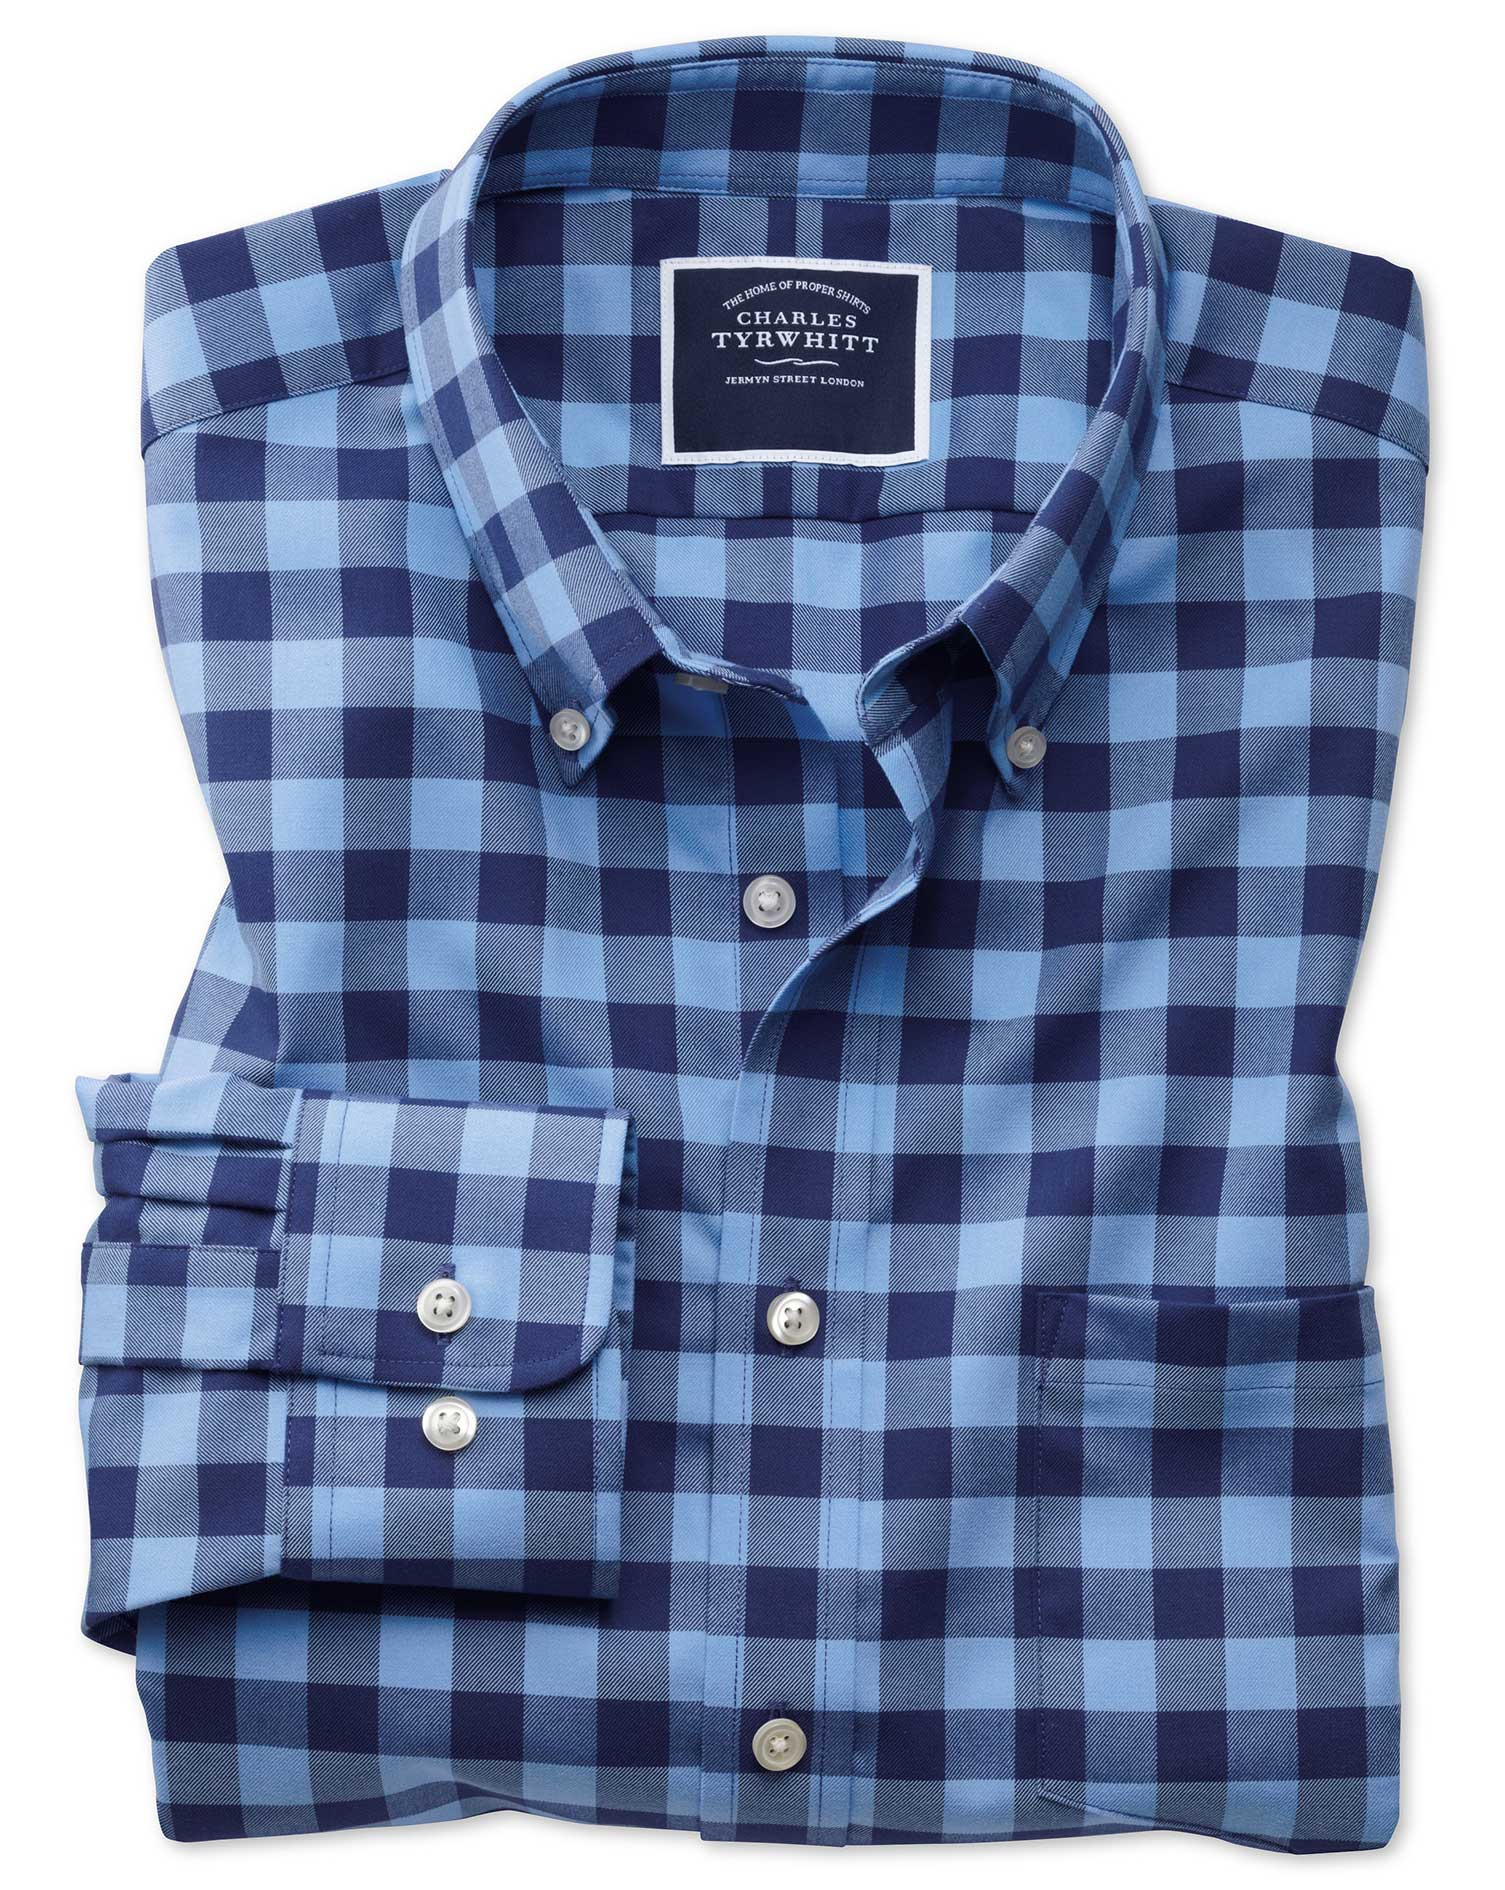 Slim Fit Button-Down Non-Iron Twill Blue and Navy Gingham Cotton Shirt Single Cuff Size XL by Charle